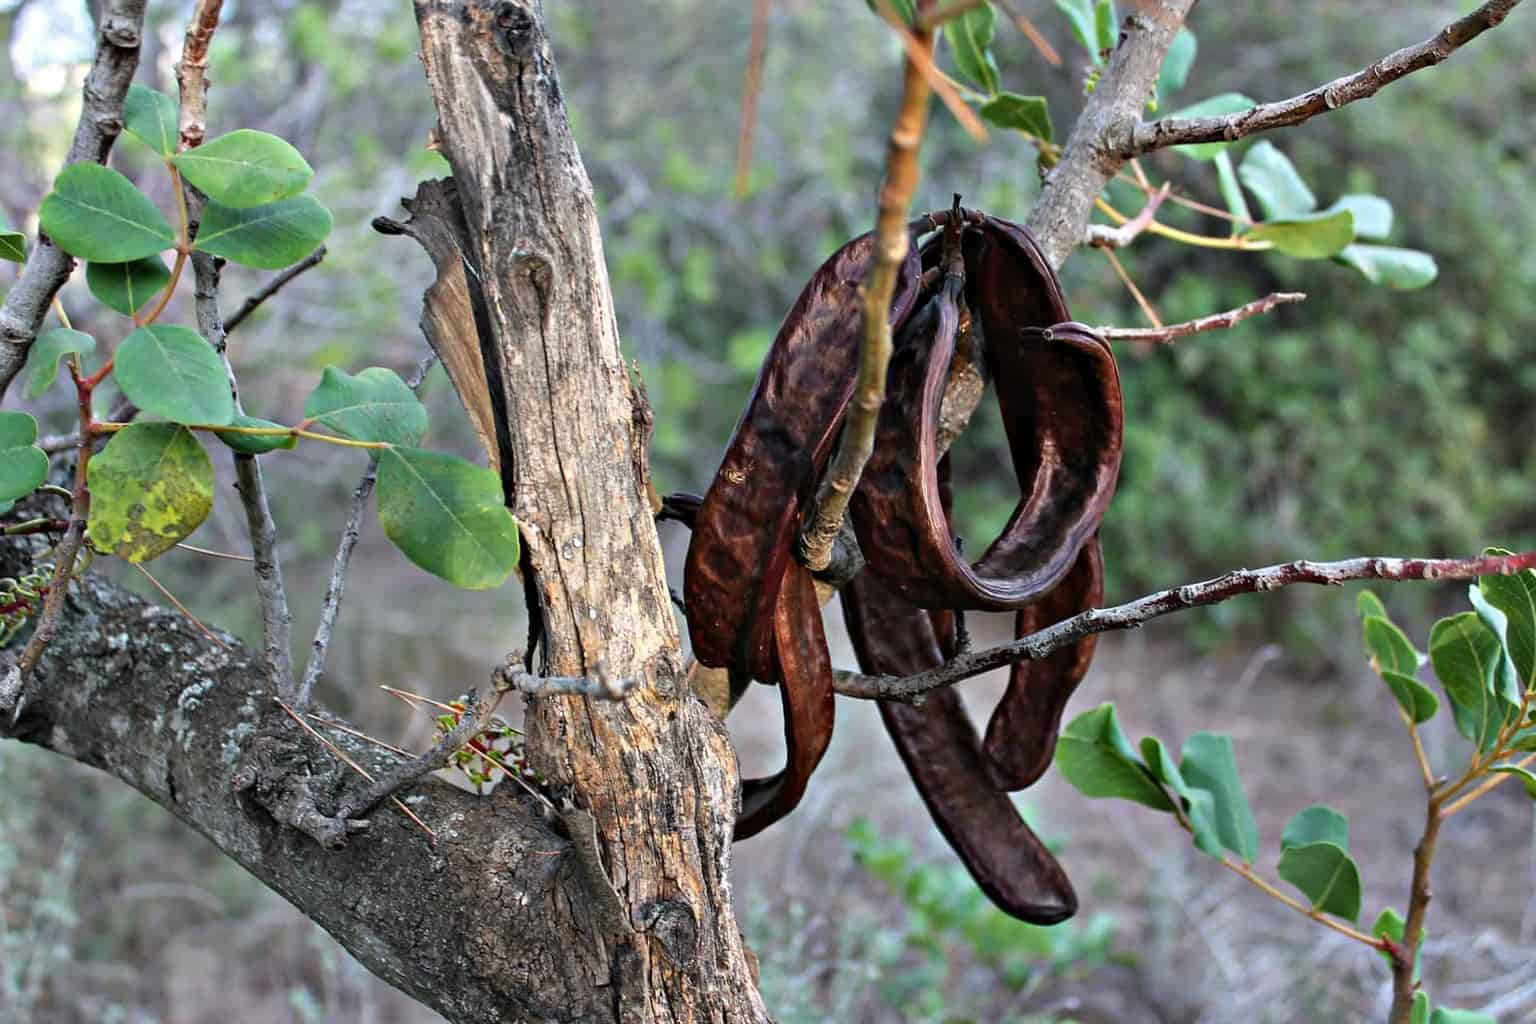 Carob tree with pods